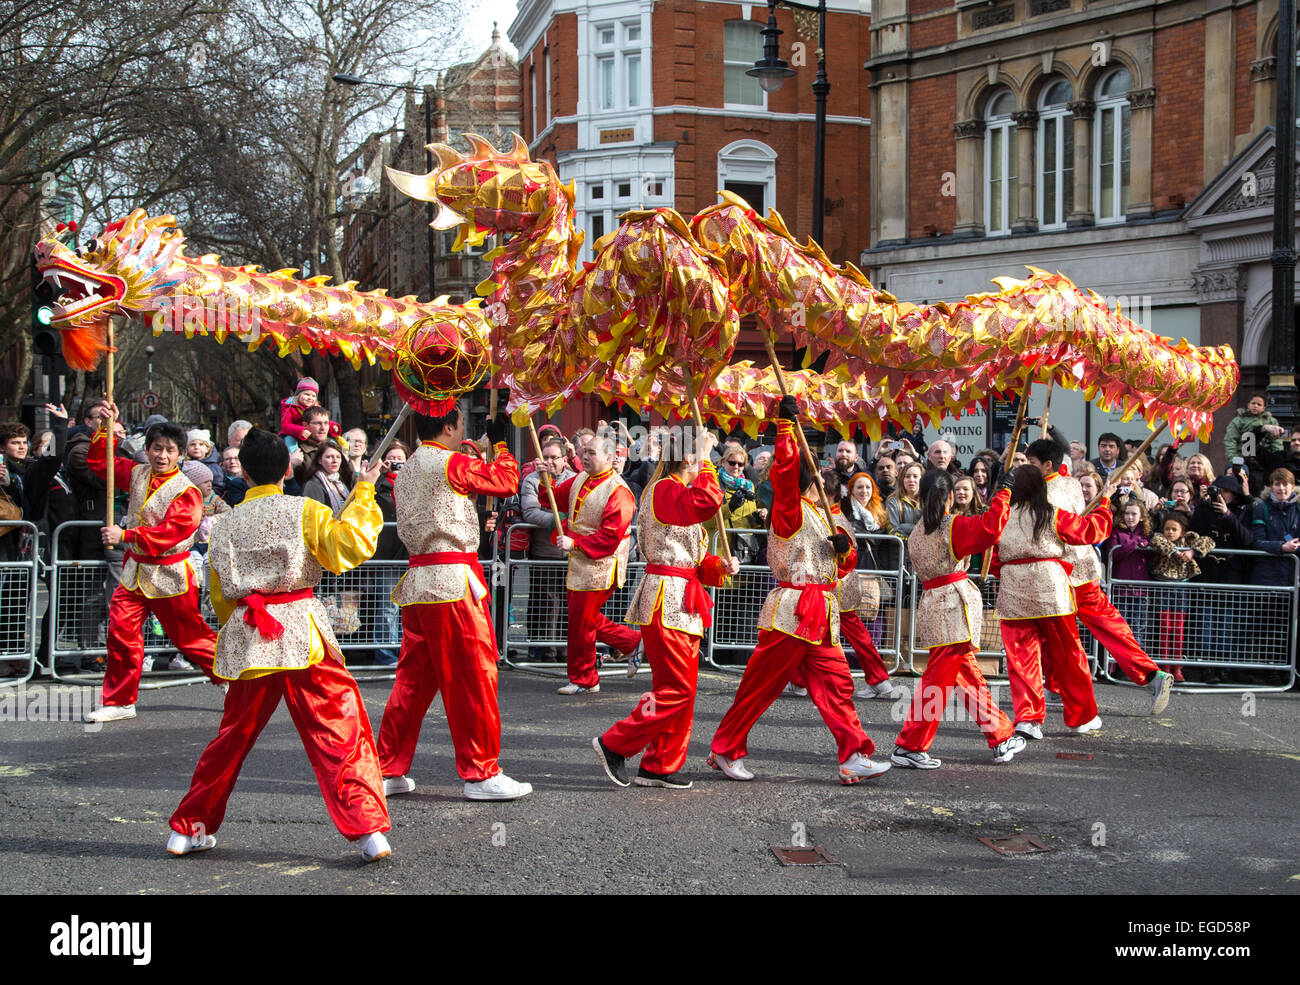 Celebrations for Chinese New Year in London to mark the Year of the Goat or Sheep 2015 - Stock Image